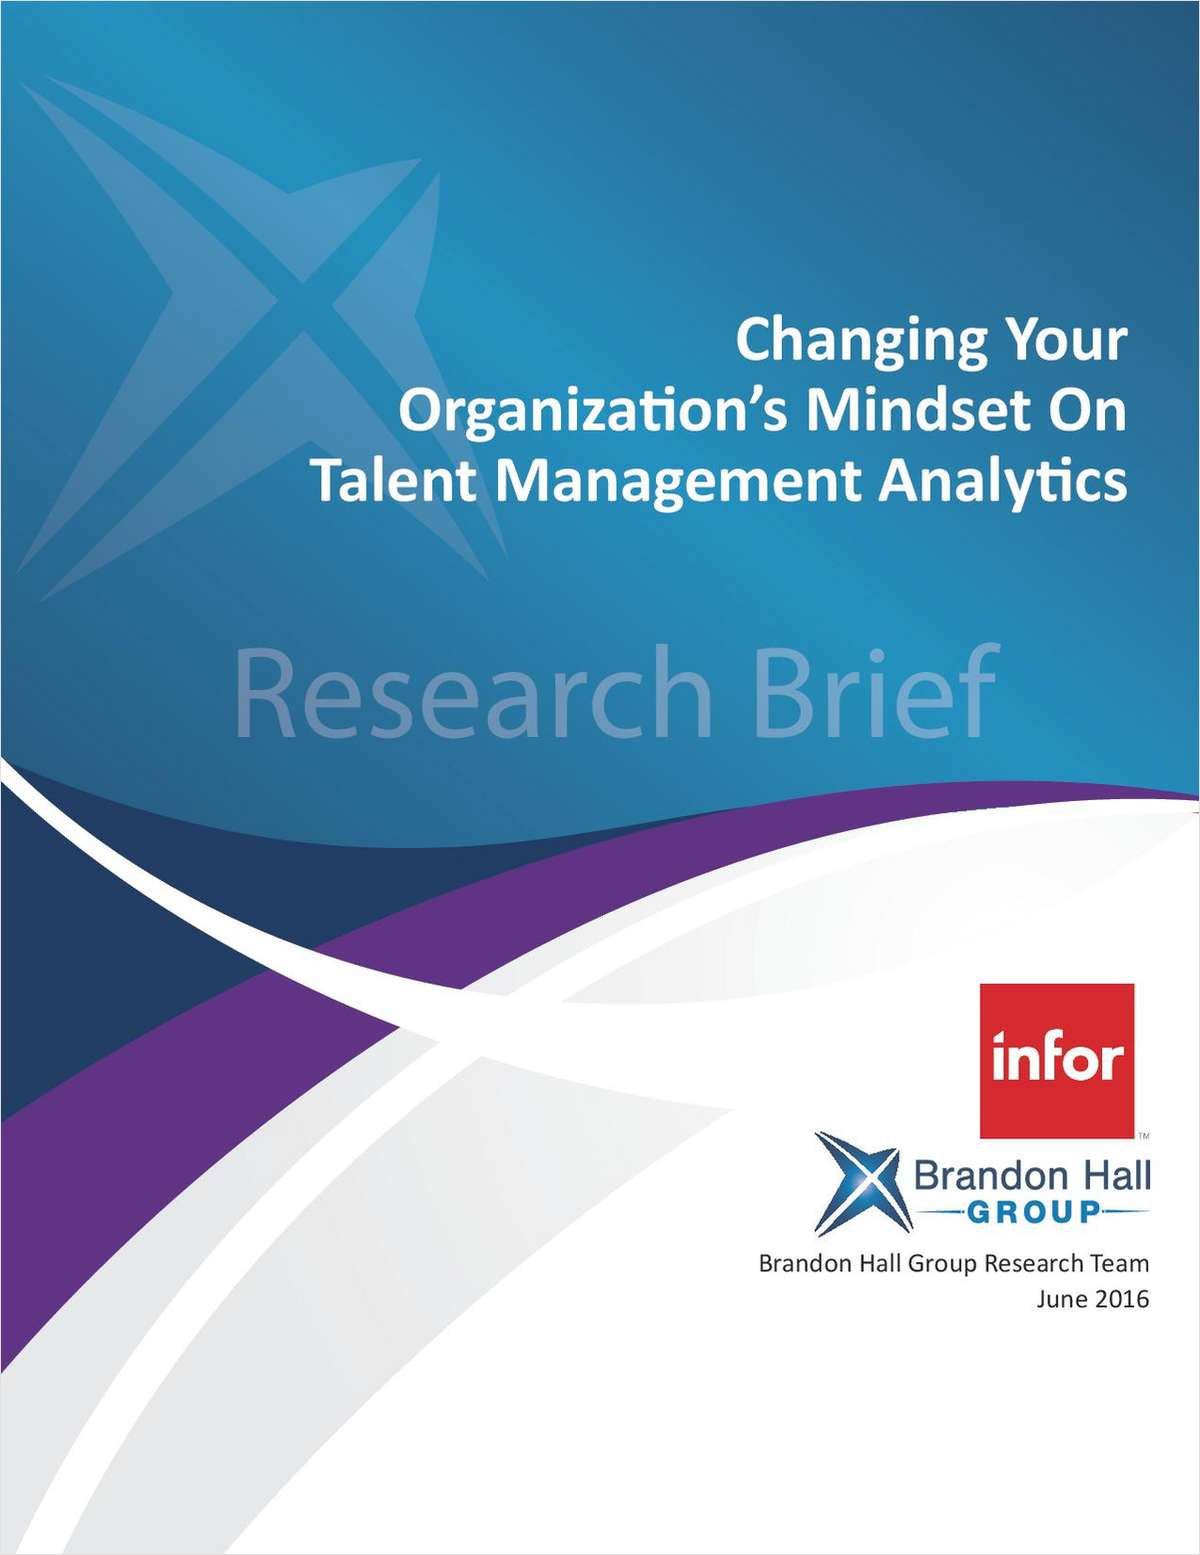 Brandon Hall Group: Changing Your Organization's Mindset on Talent Management Analytics